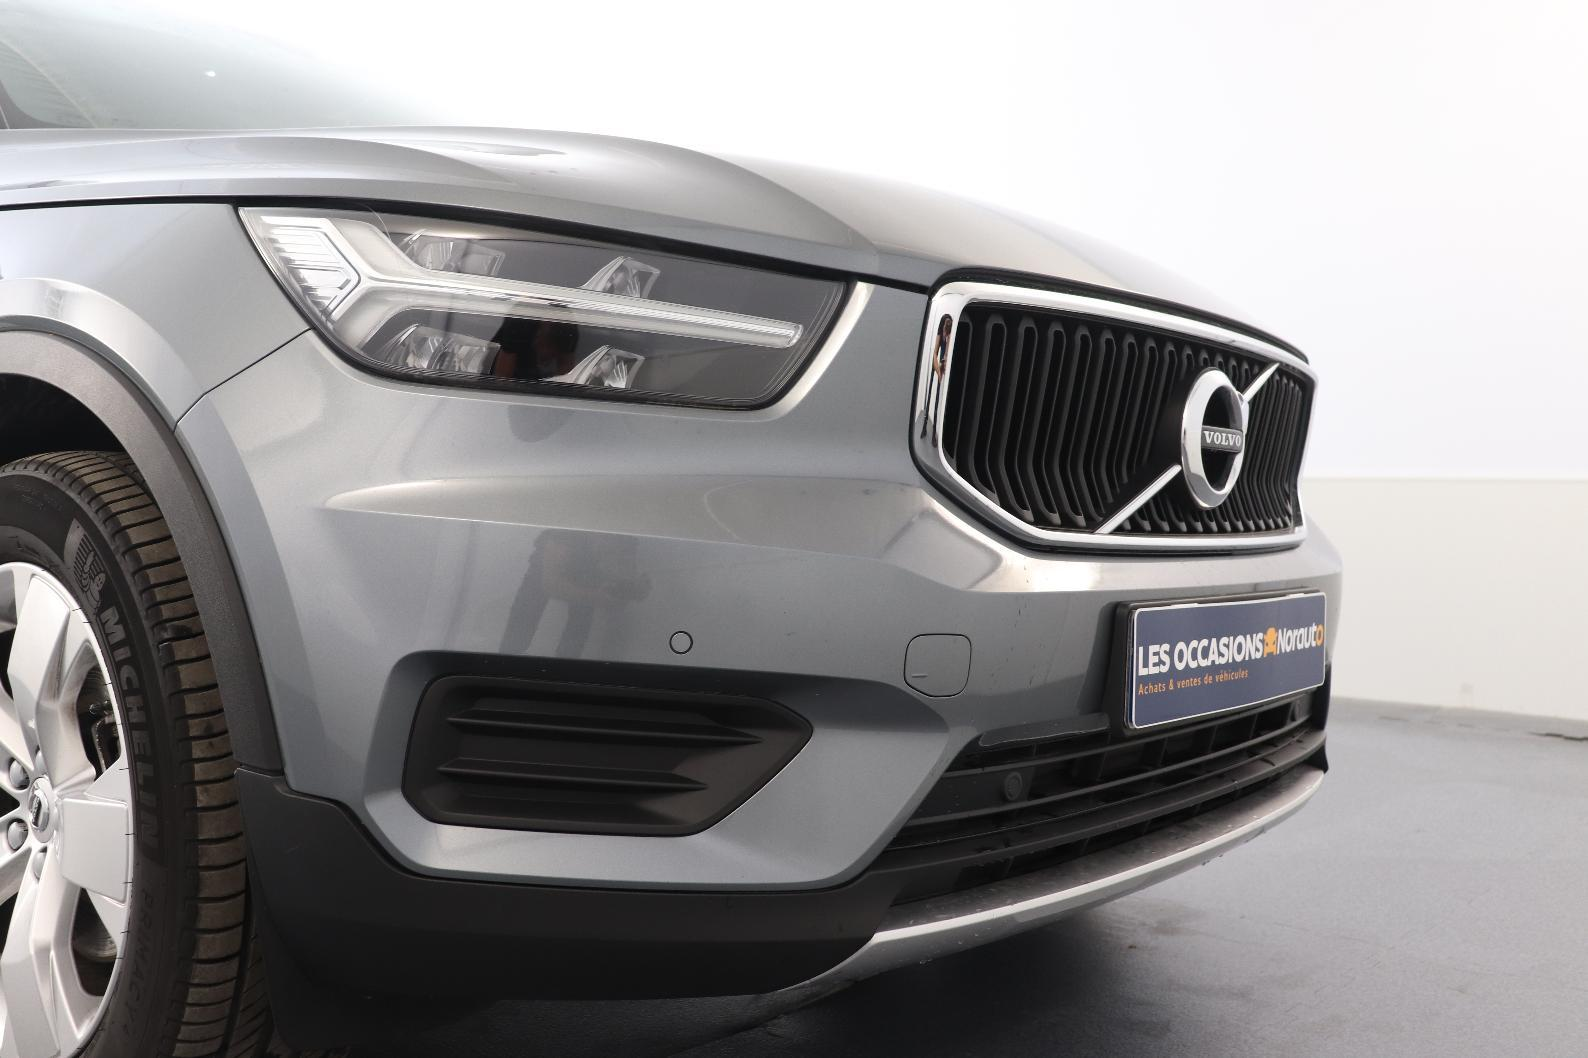 VOLVO XC40 T4 AWD 190 ch Geartronic 8 Momentum